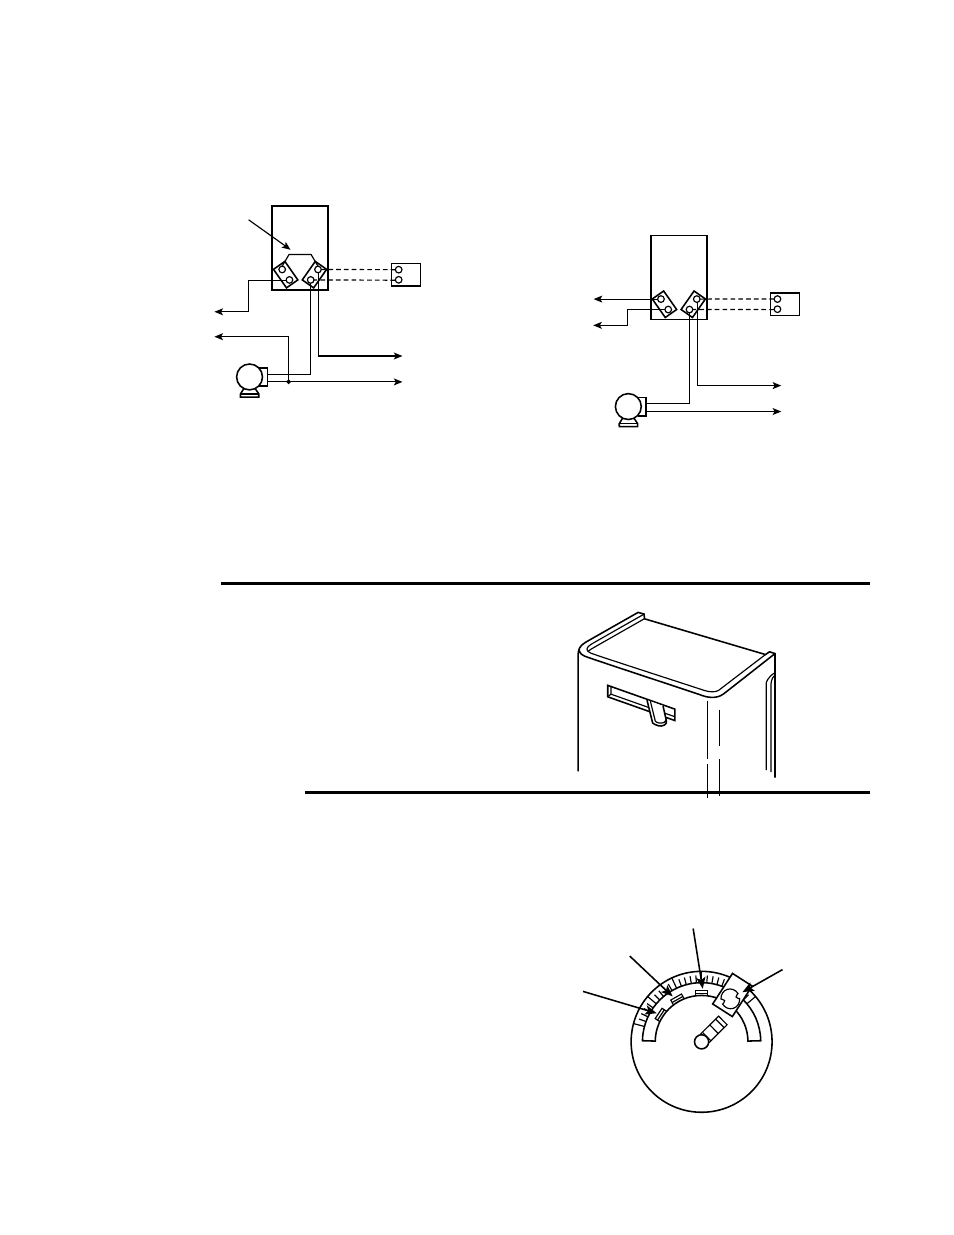 Fan Limit Switch Wiring White Rogers Electrical Diagram Honeywell 4064 Operation Setting The Dial Rodgers 5d51 78 User Rh Manualsdir Com Gas Furnace